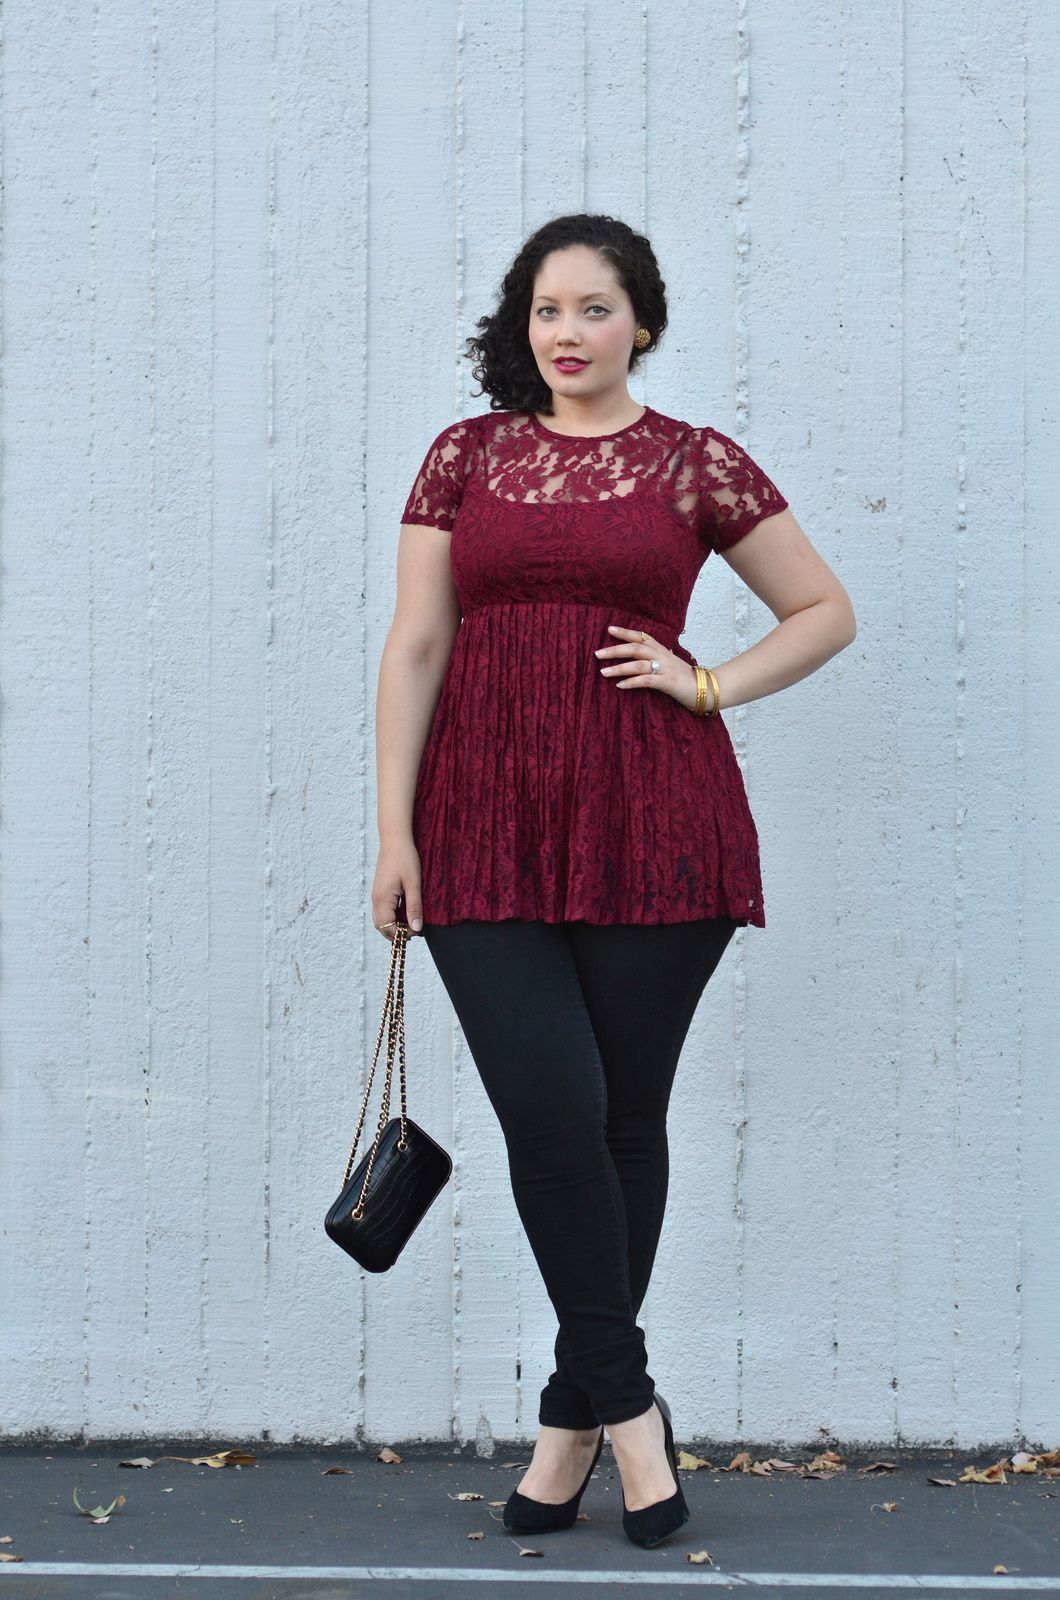 Burgundy Lace Pretty Outfits Lace Outfit Curvy Fashion